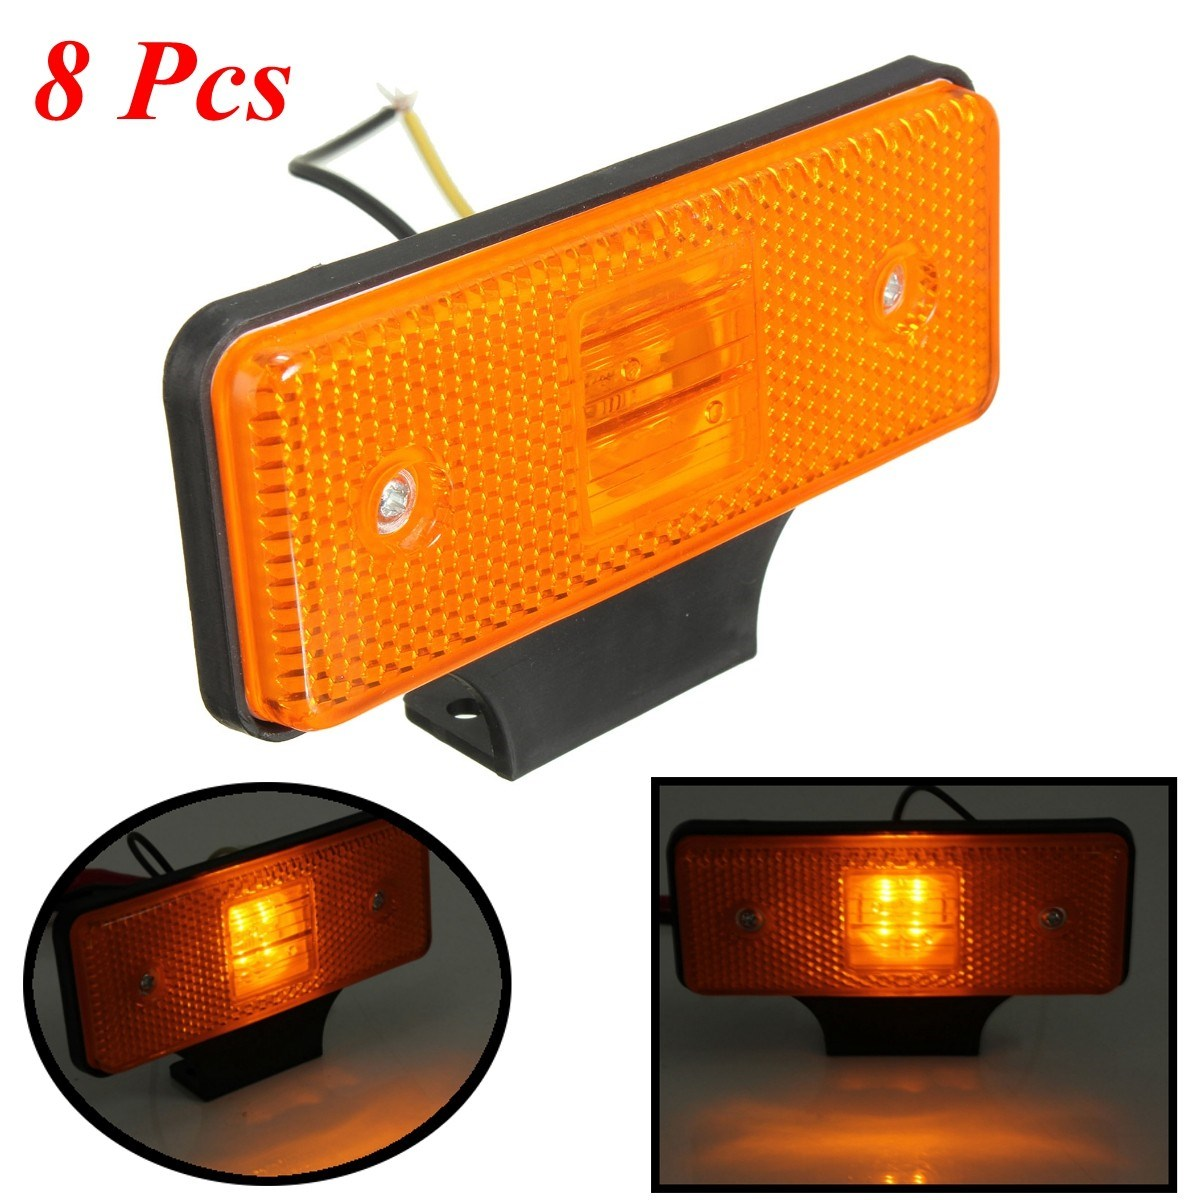 New 8 Pcs Universal 12V Truck Vehicle Amber 4 LEDs Side Market Light Lamp Indicator<br><br>Aliexpress